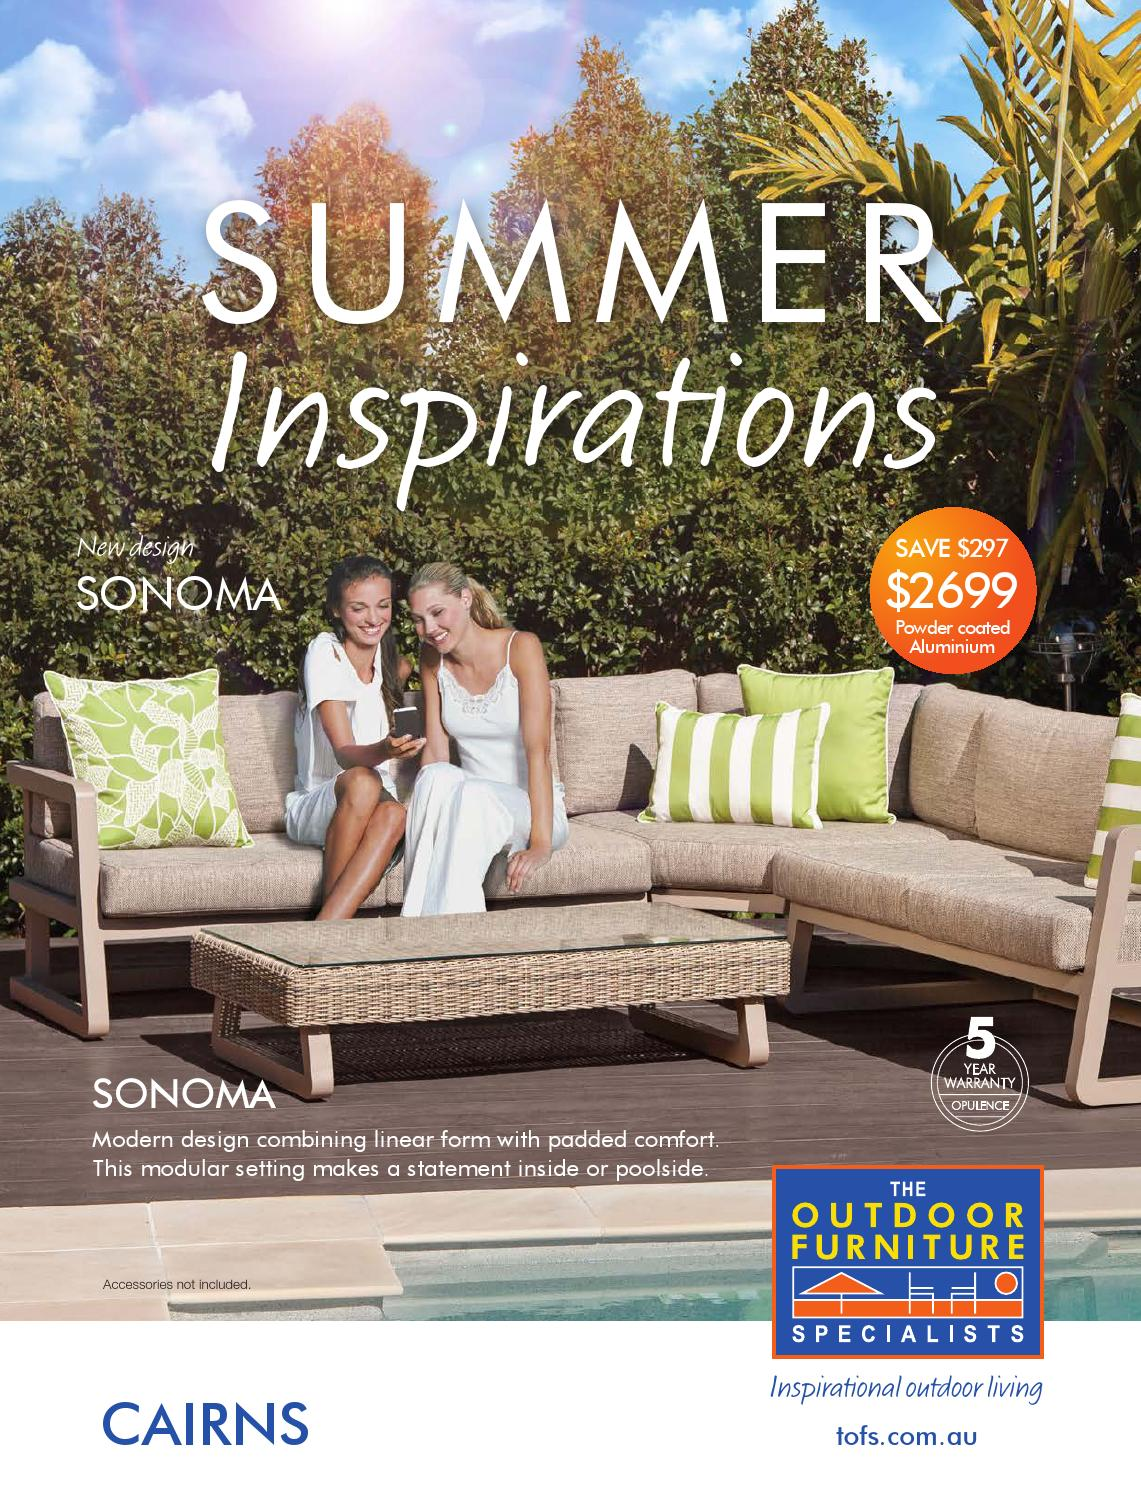 The Outdoor Furniture Specialists Cairns